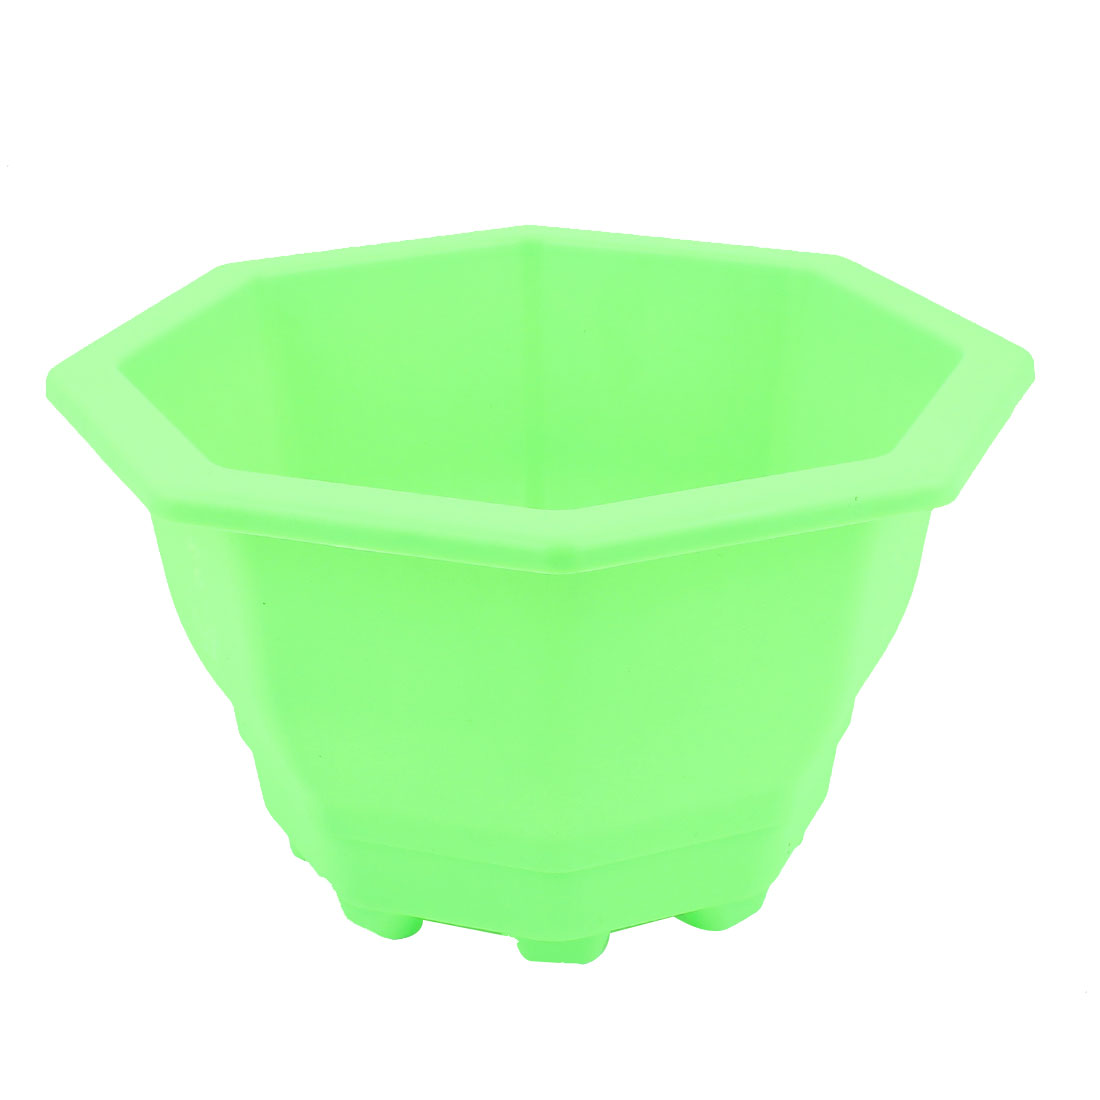 Plastic Octagon Shaped Office Home Garden Window Decor Plant Flower Pot Green